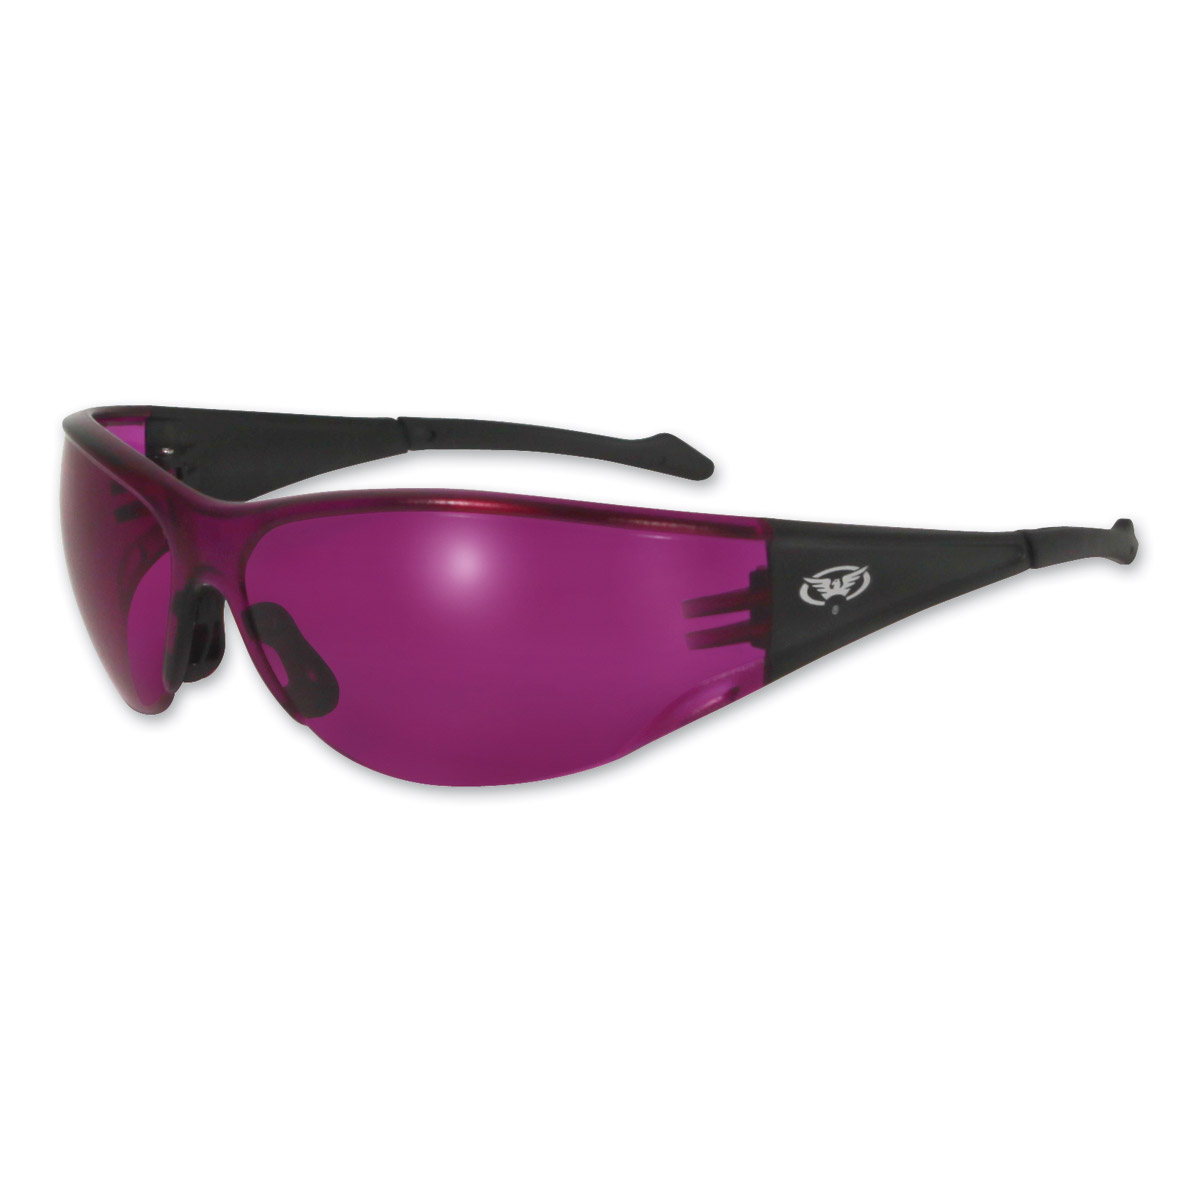 Global Vision Eyewear Full Throttle C Sunglasses with Purple Lens